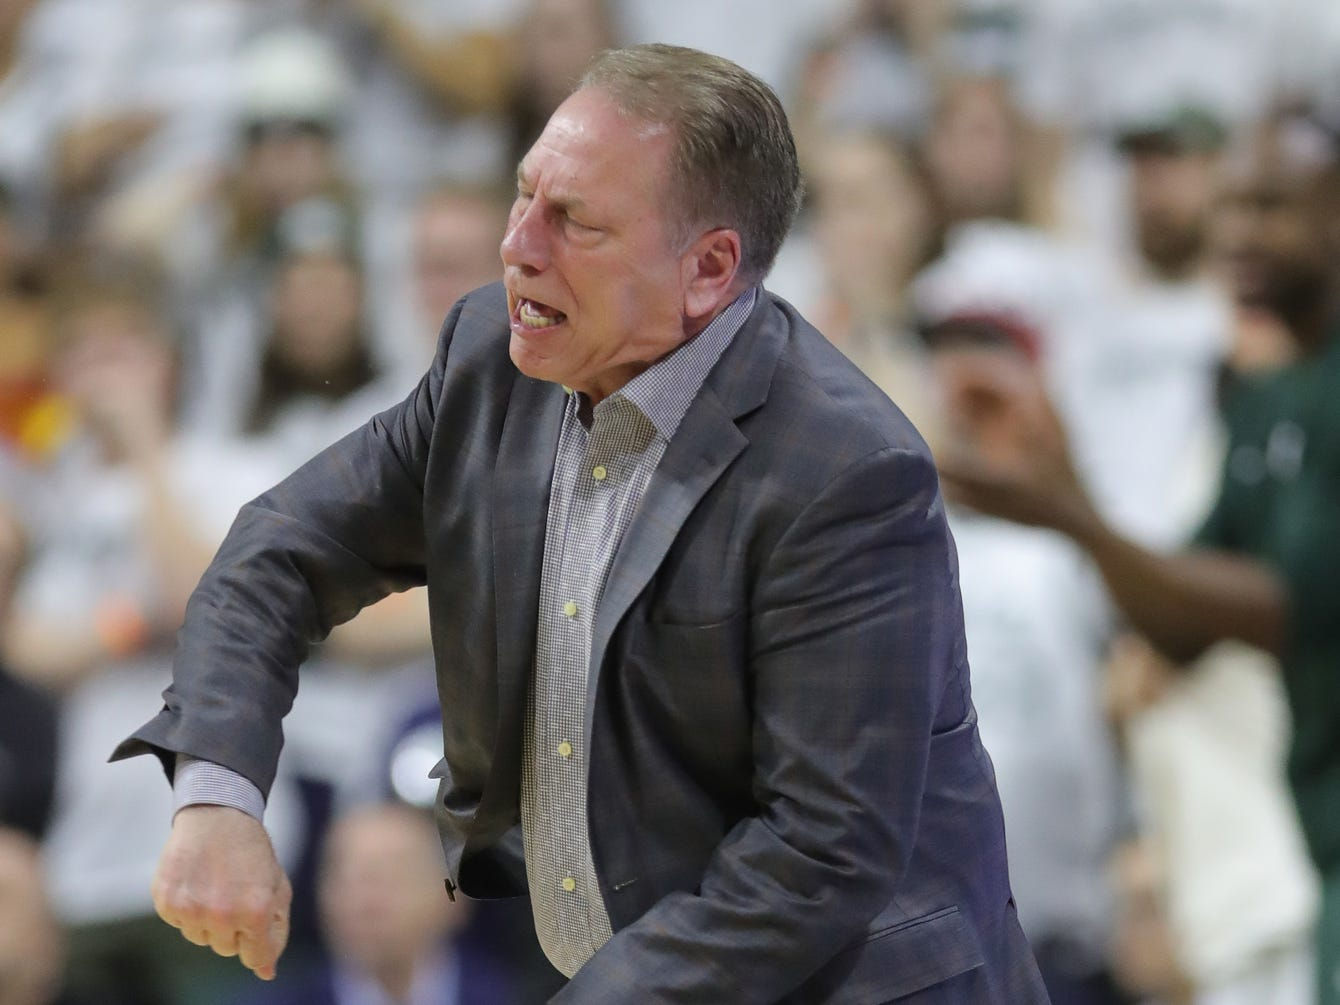 Michigan State coach Tom Izzo reacts after a call during the first half of the 79-75 overtime loss to Indiana on Saturday, Feb. 2, 2019, in East Lansing.